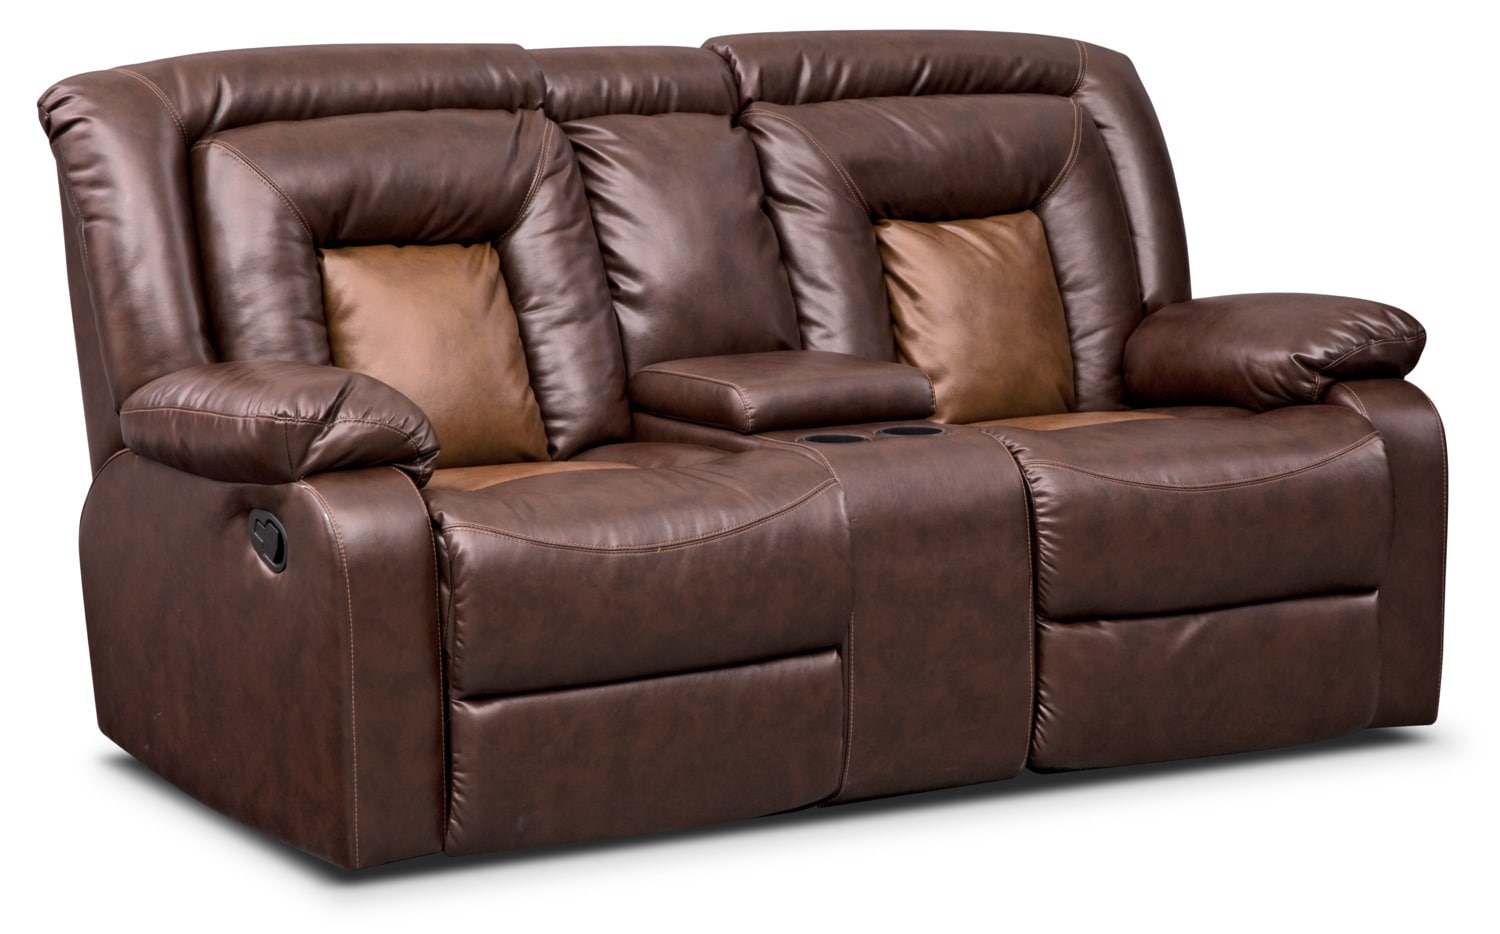 Living Room Furniture - Mustang Dual-Reclining Loveseat with Console - Brown